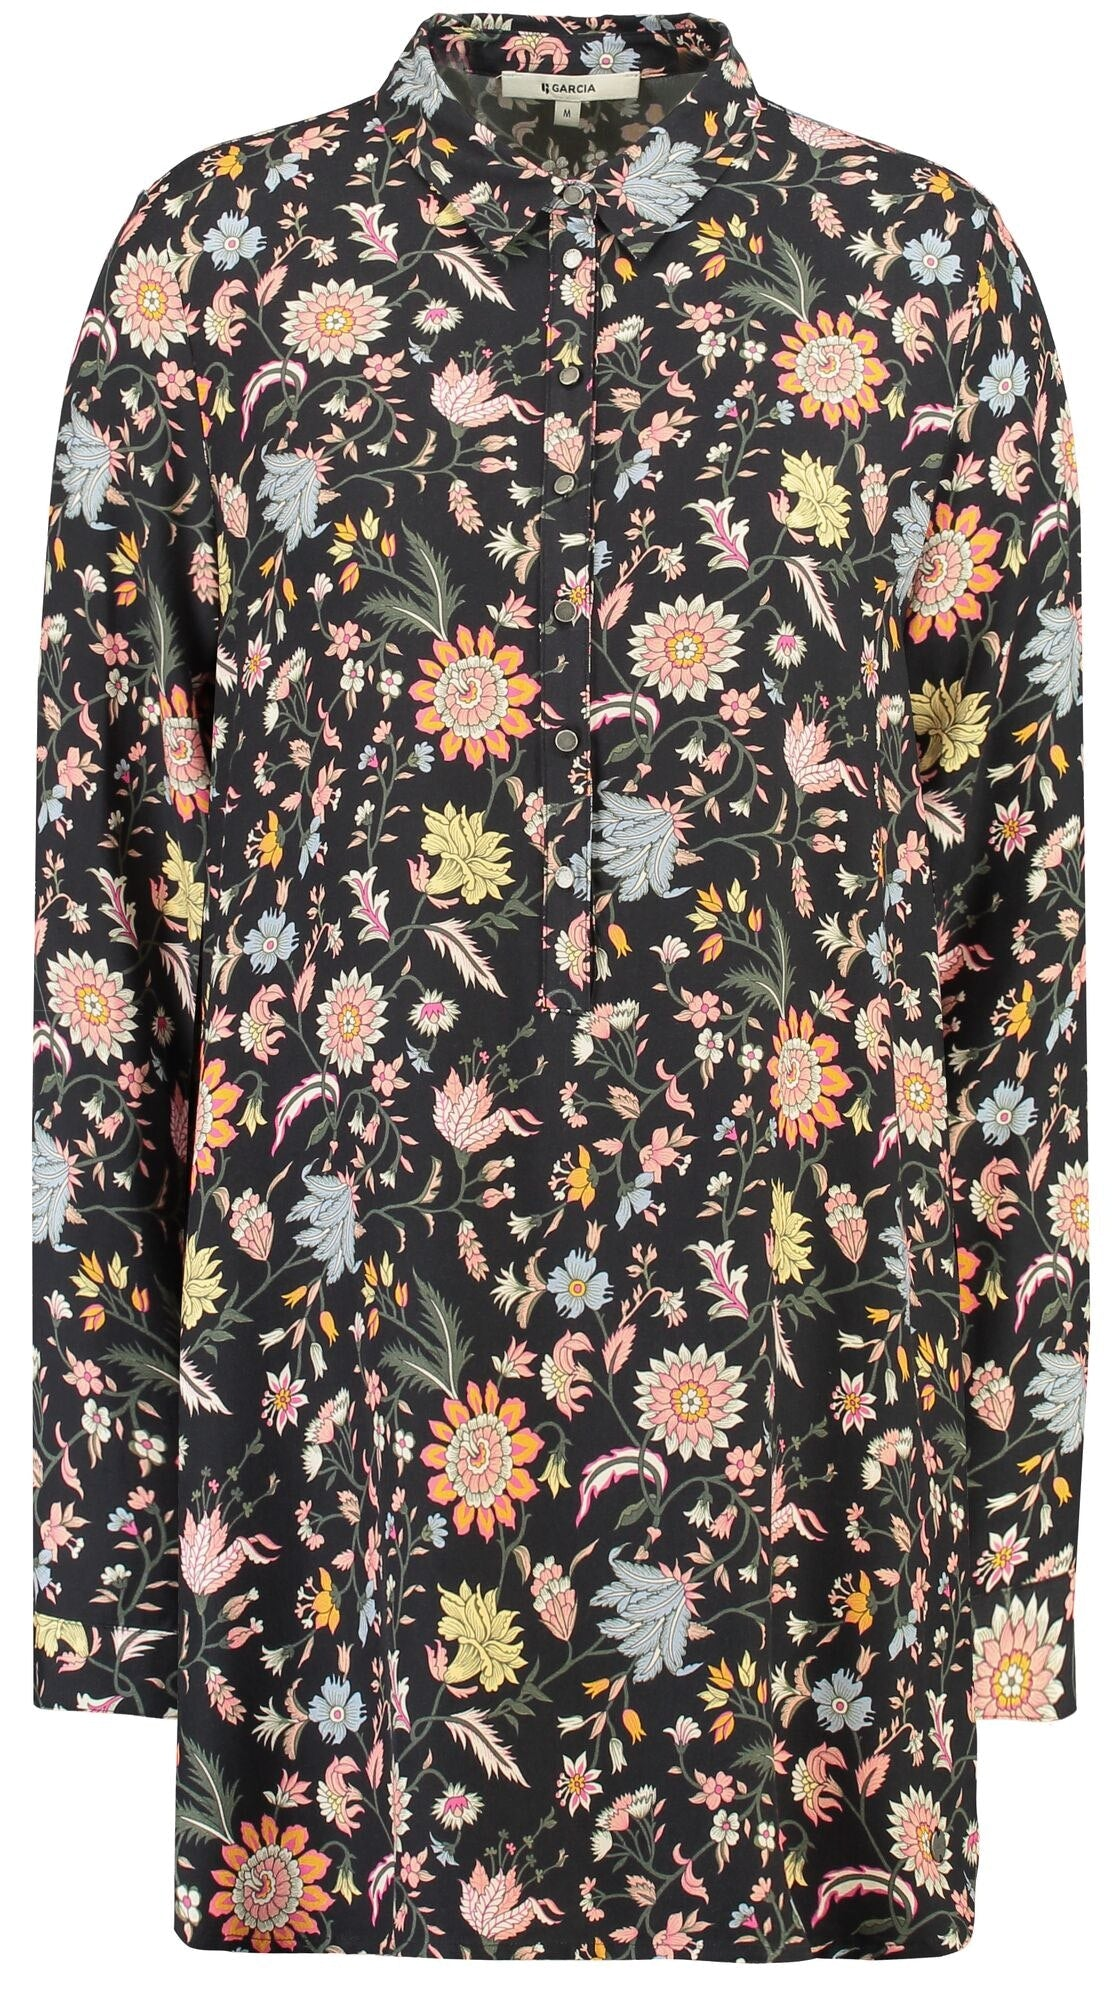 GARCIA Tunika mit allover Blumenprint